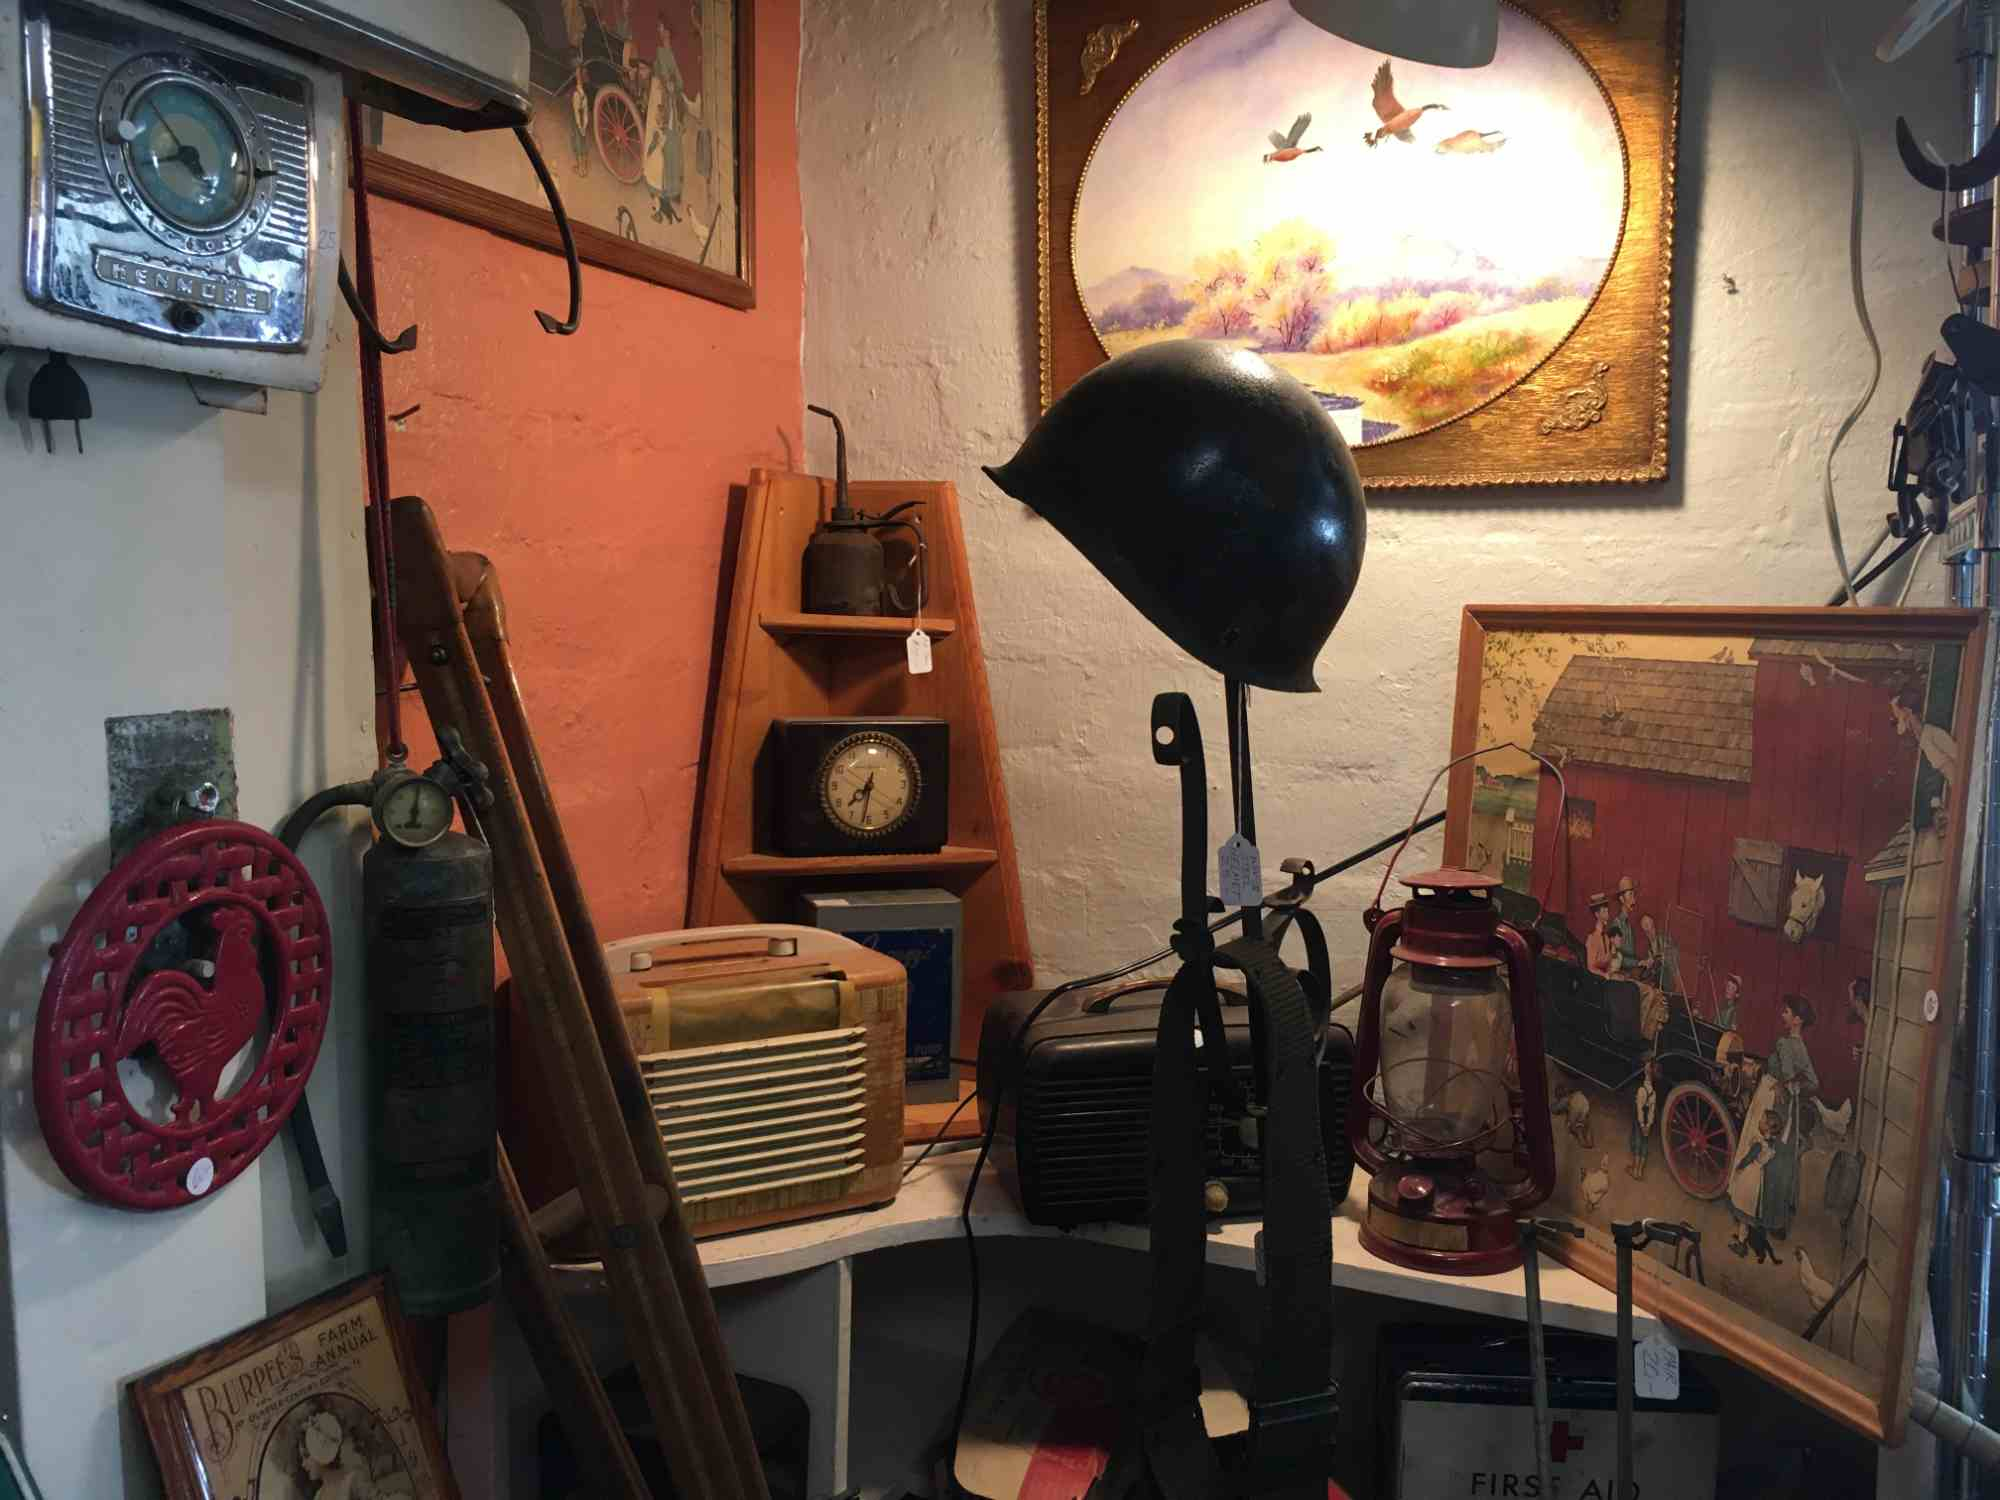 collectibles at Don's Den Truth or Consequences